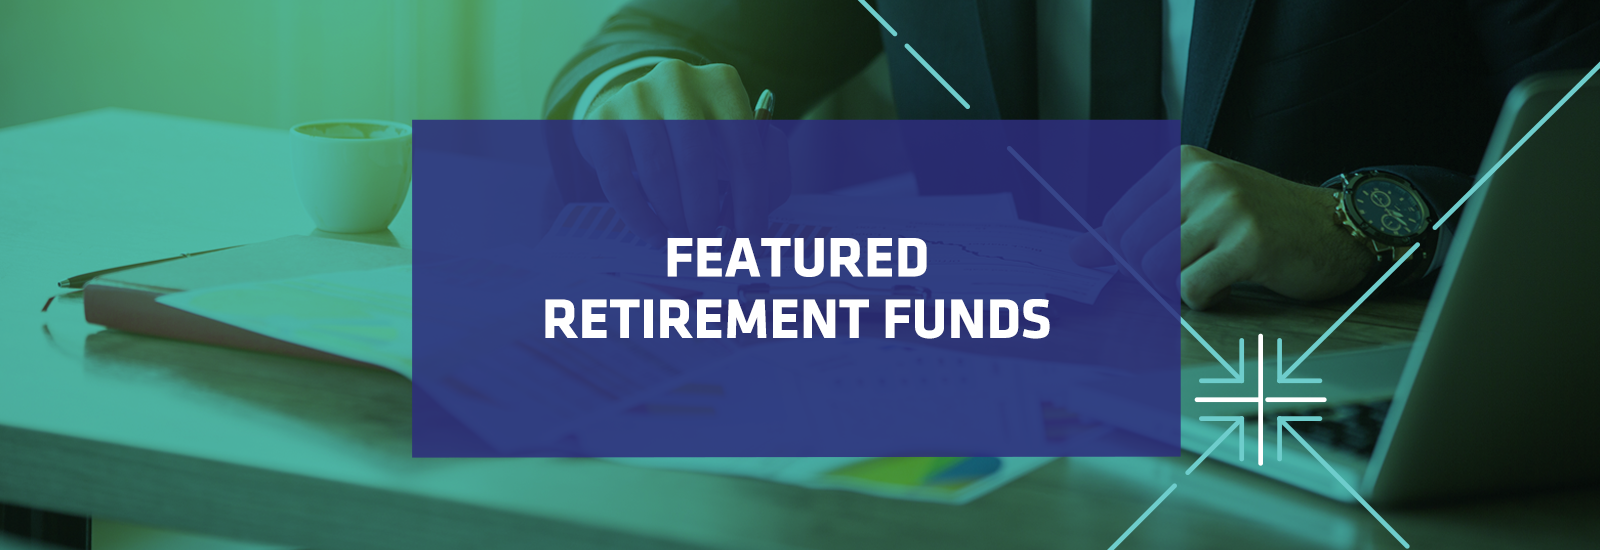 FEATURED RETIREMENT FUNDS